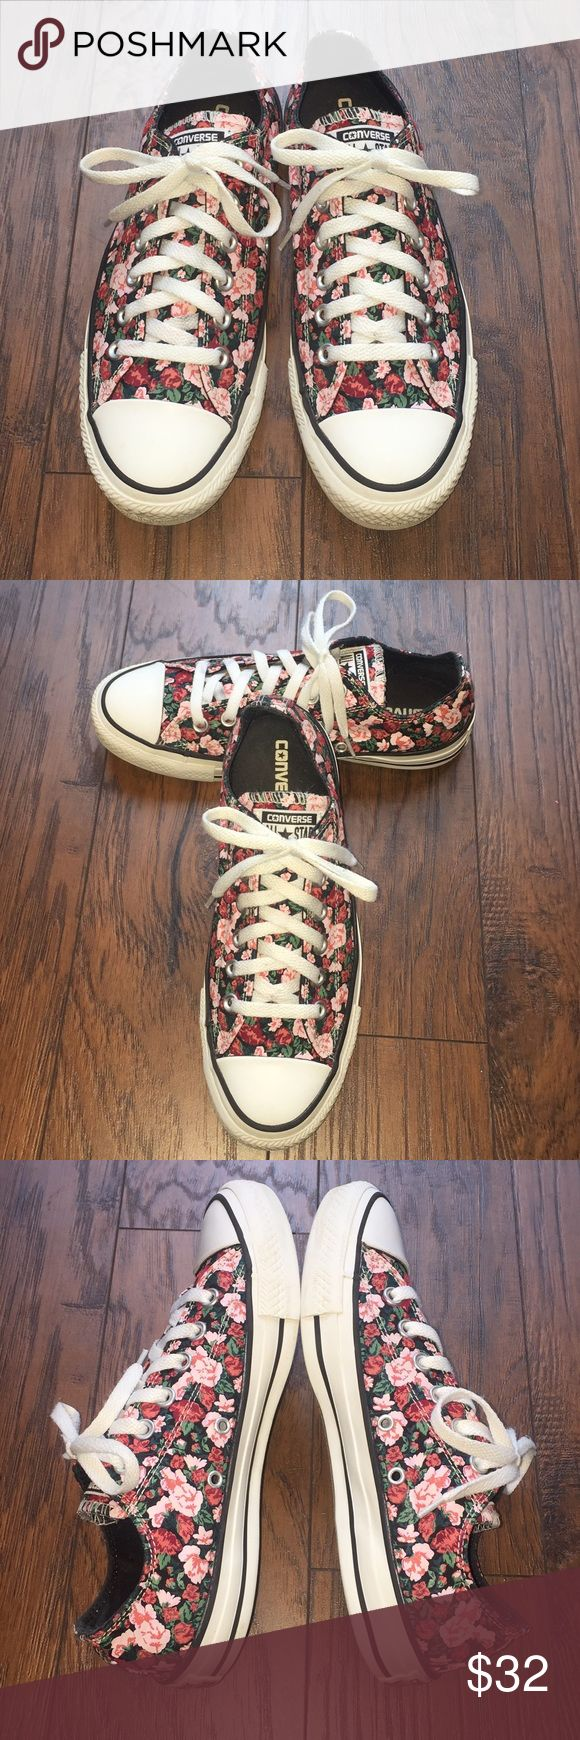 Converse All Star black floral roses low tops 8 Awesome Converse All Star sneakers in black, covered in a sea of roses. The perfect balance of pretty and edgy! Women's size 8. Converse Shoes Sneakers